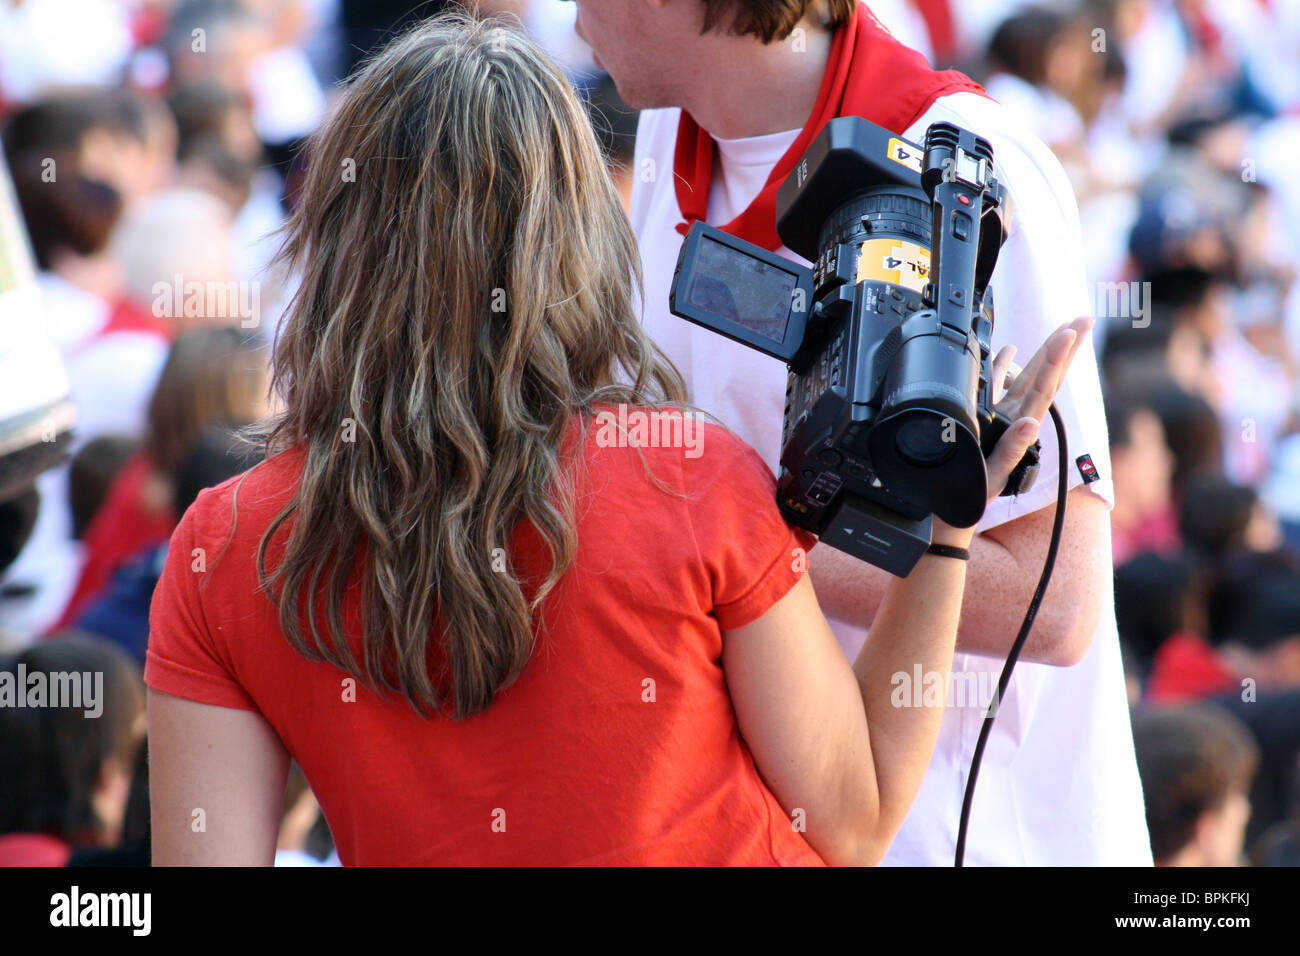 Reporting on the holidays of San Fermin, Pamplona, Navarre, Spain. Stock Photo